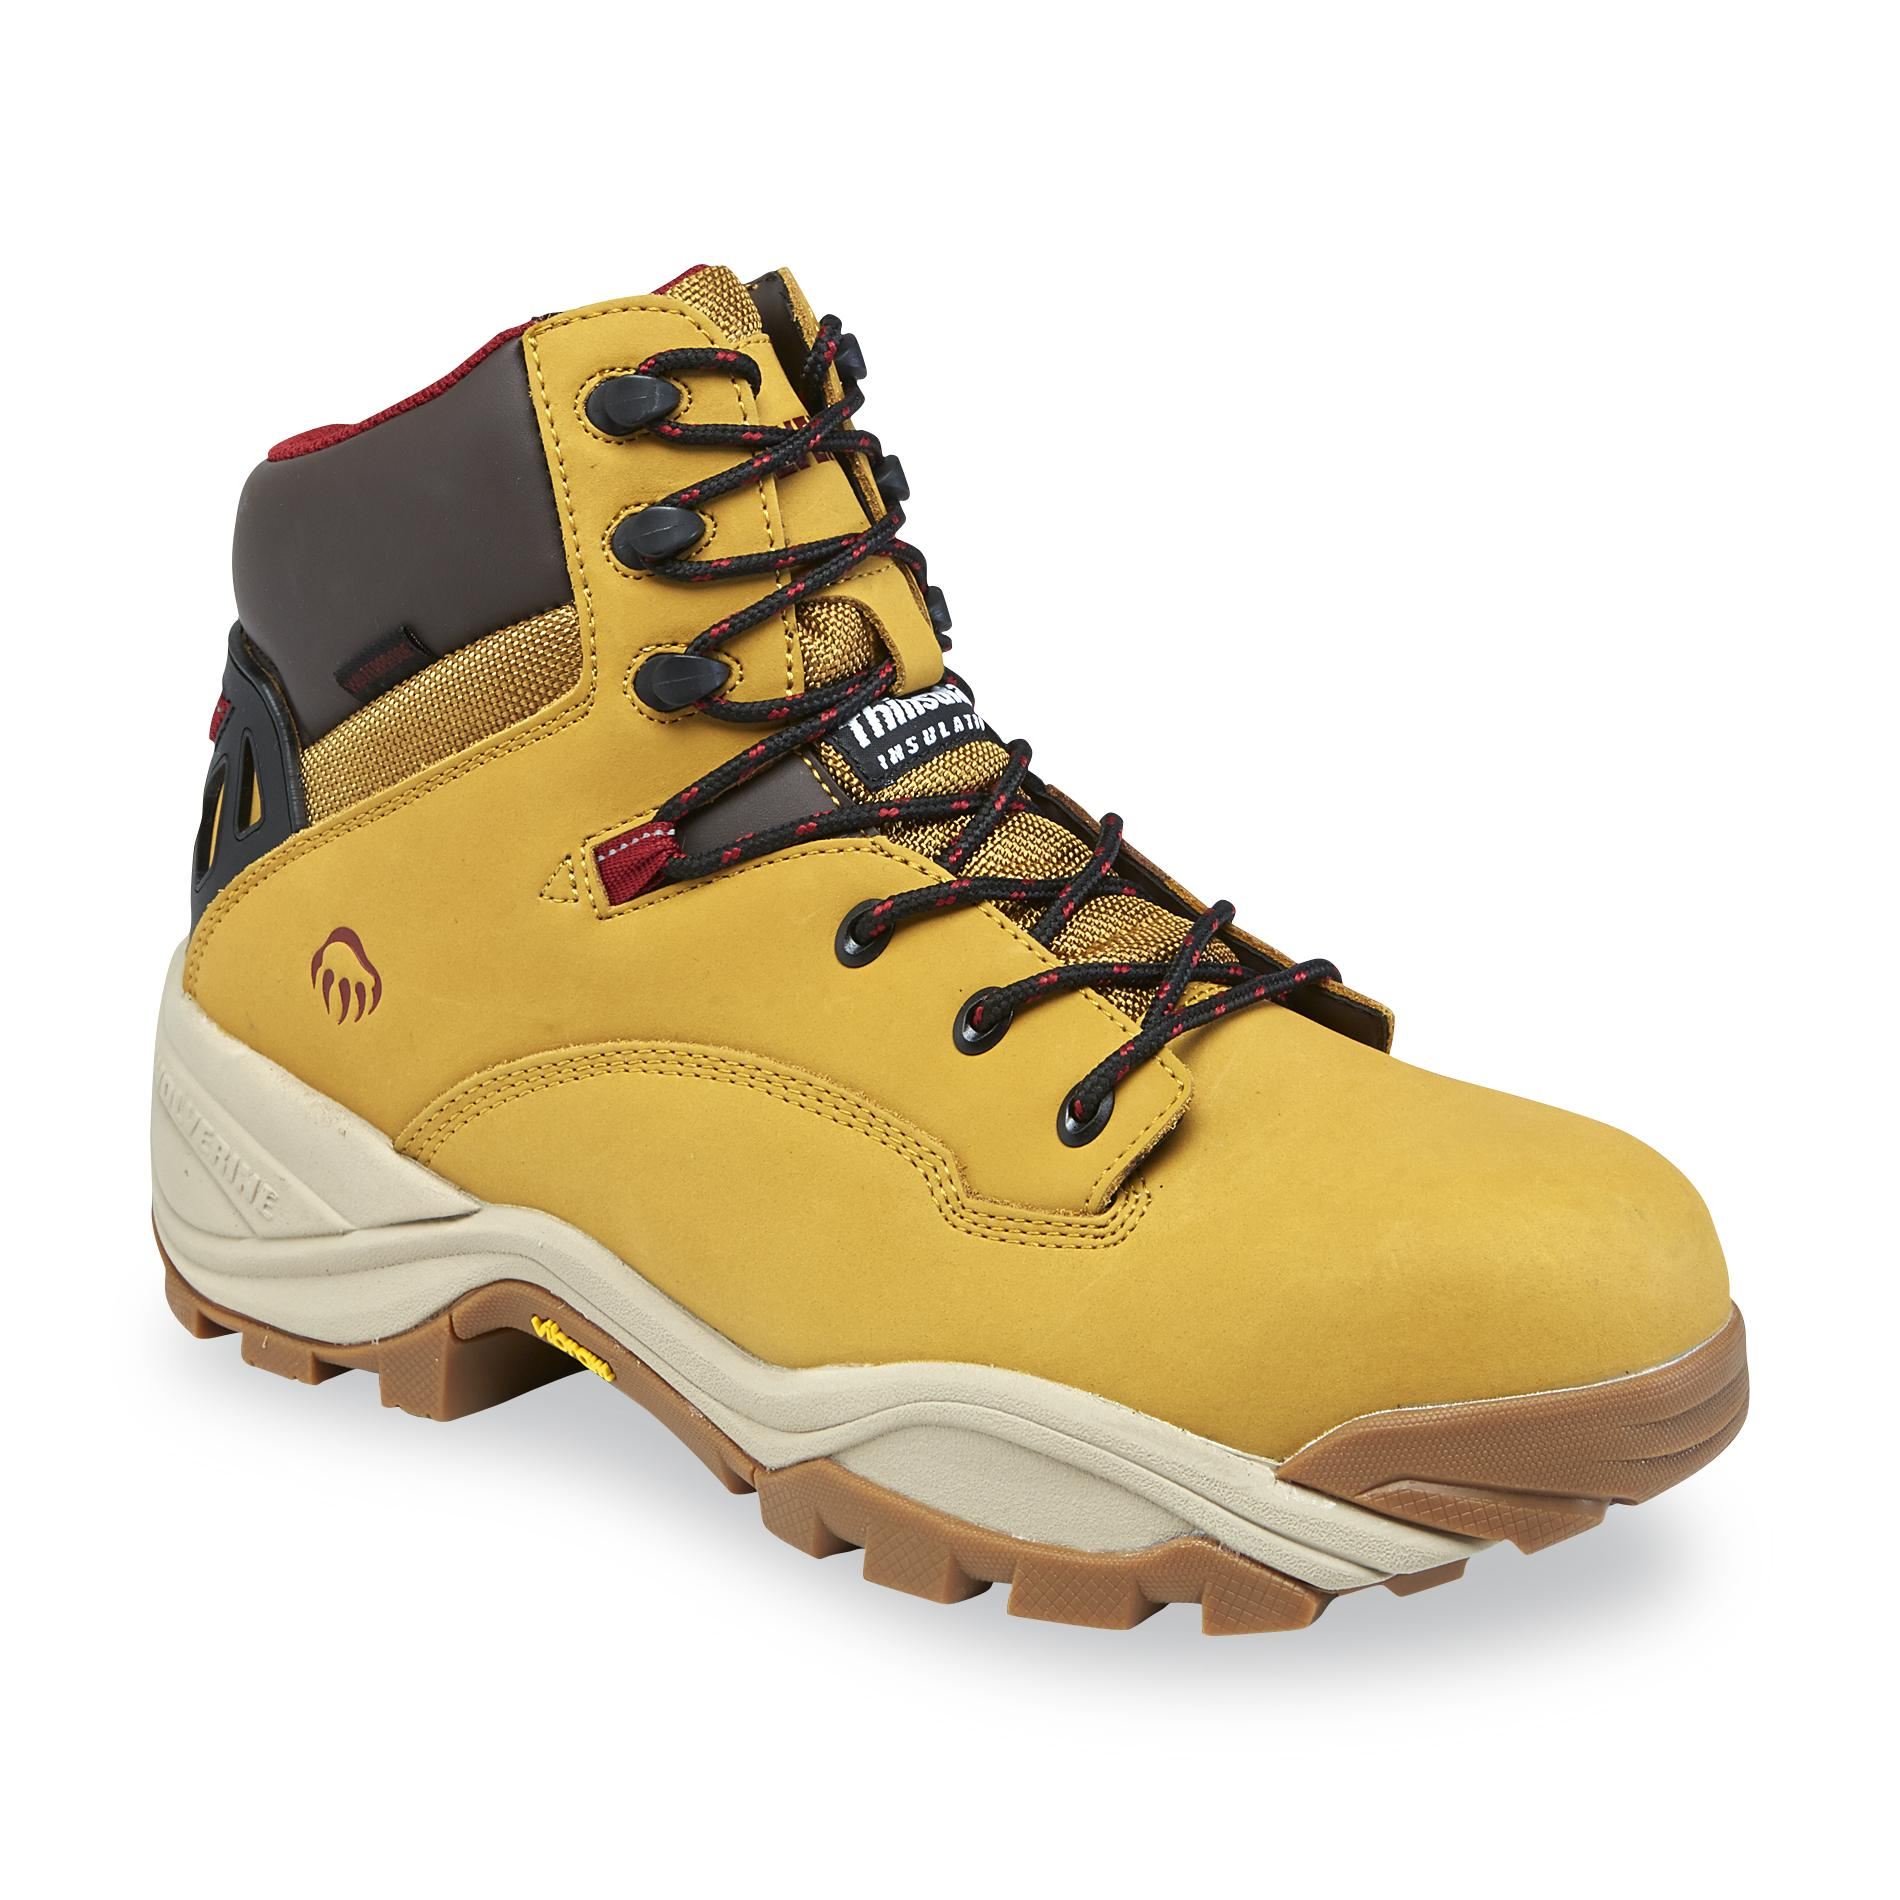 Wolverine Men's Growler LX Wheat Composite Toe Work Boot - Wide Width Available